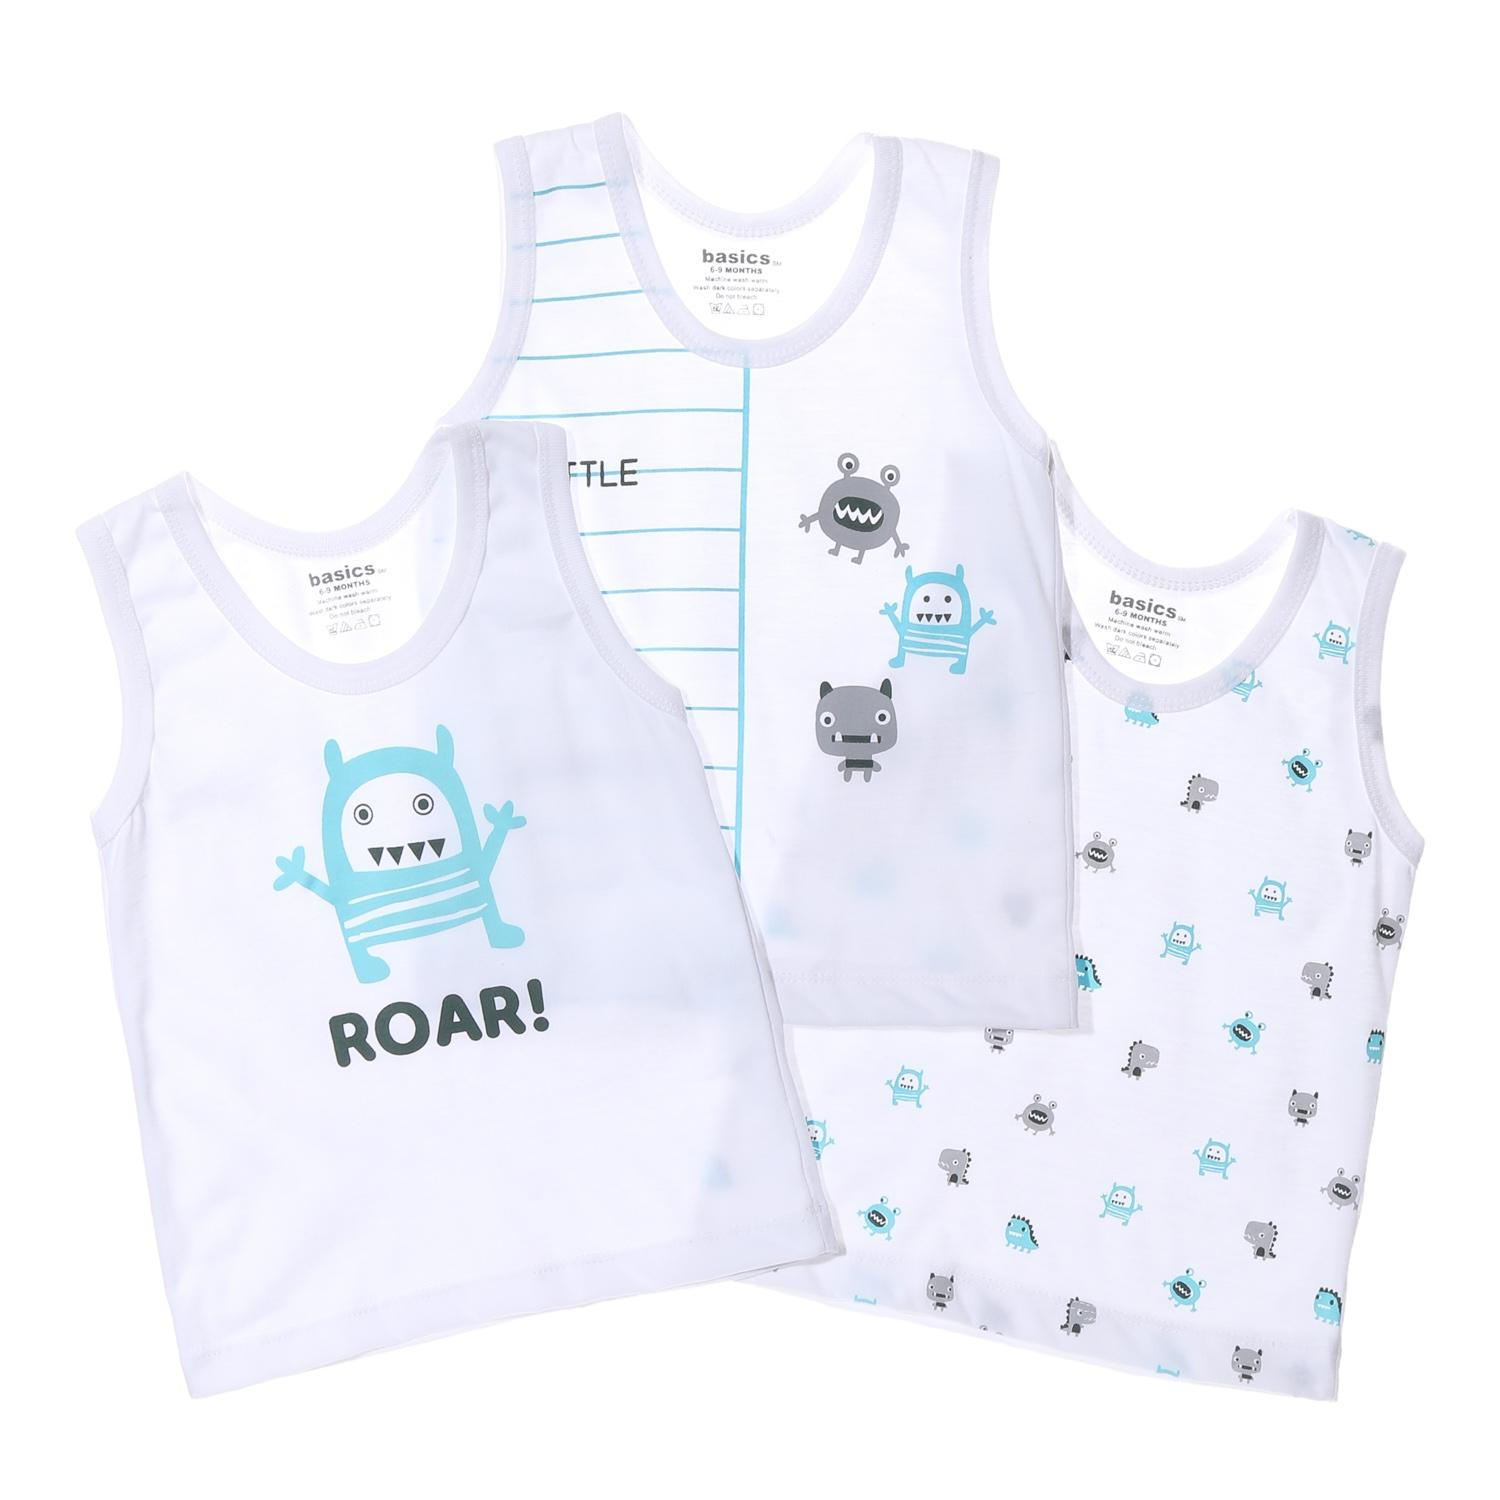 4b04094f2c1c Boys Clothing for sale - Baby Clothing for Boys online brands ...